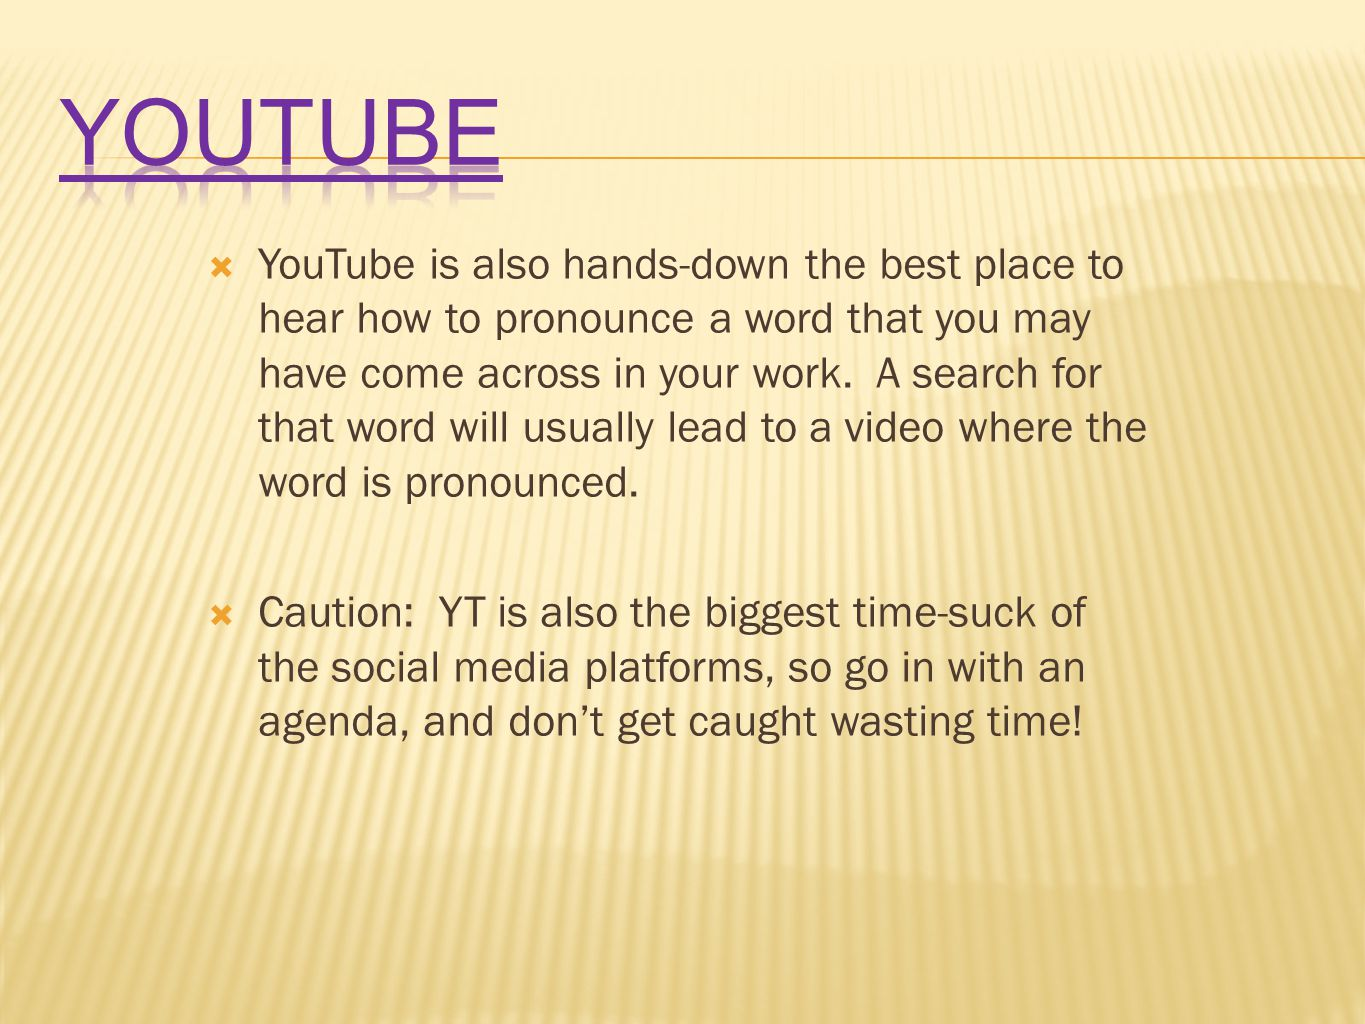  YouTube is also hands-down the best place to hear how to pronounce a word that you may have come across in your work.